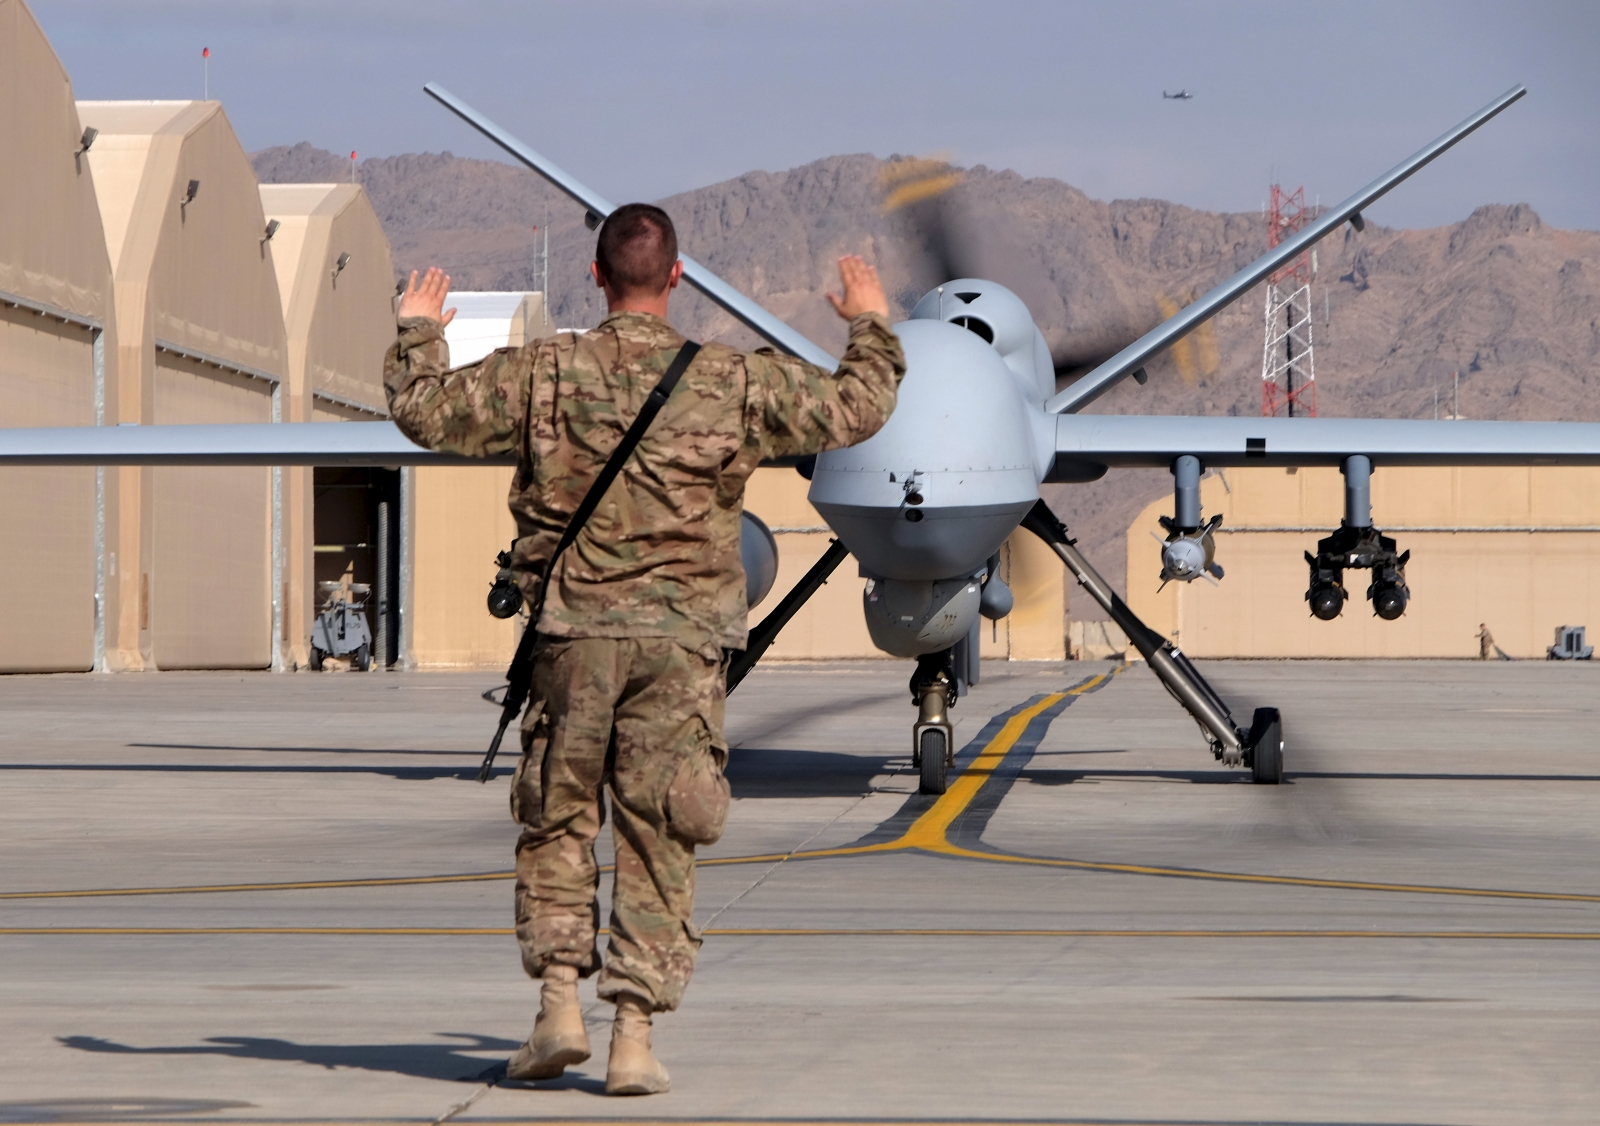 US military MQ-9 Reaper drone lands